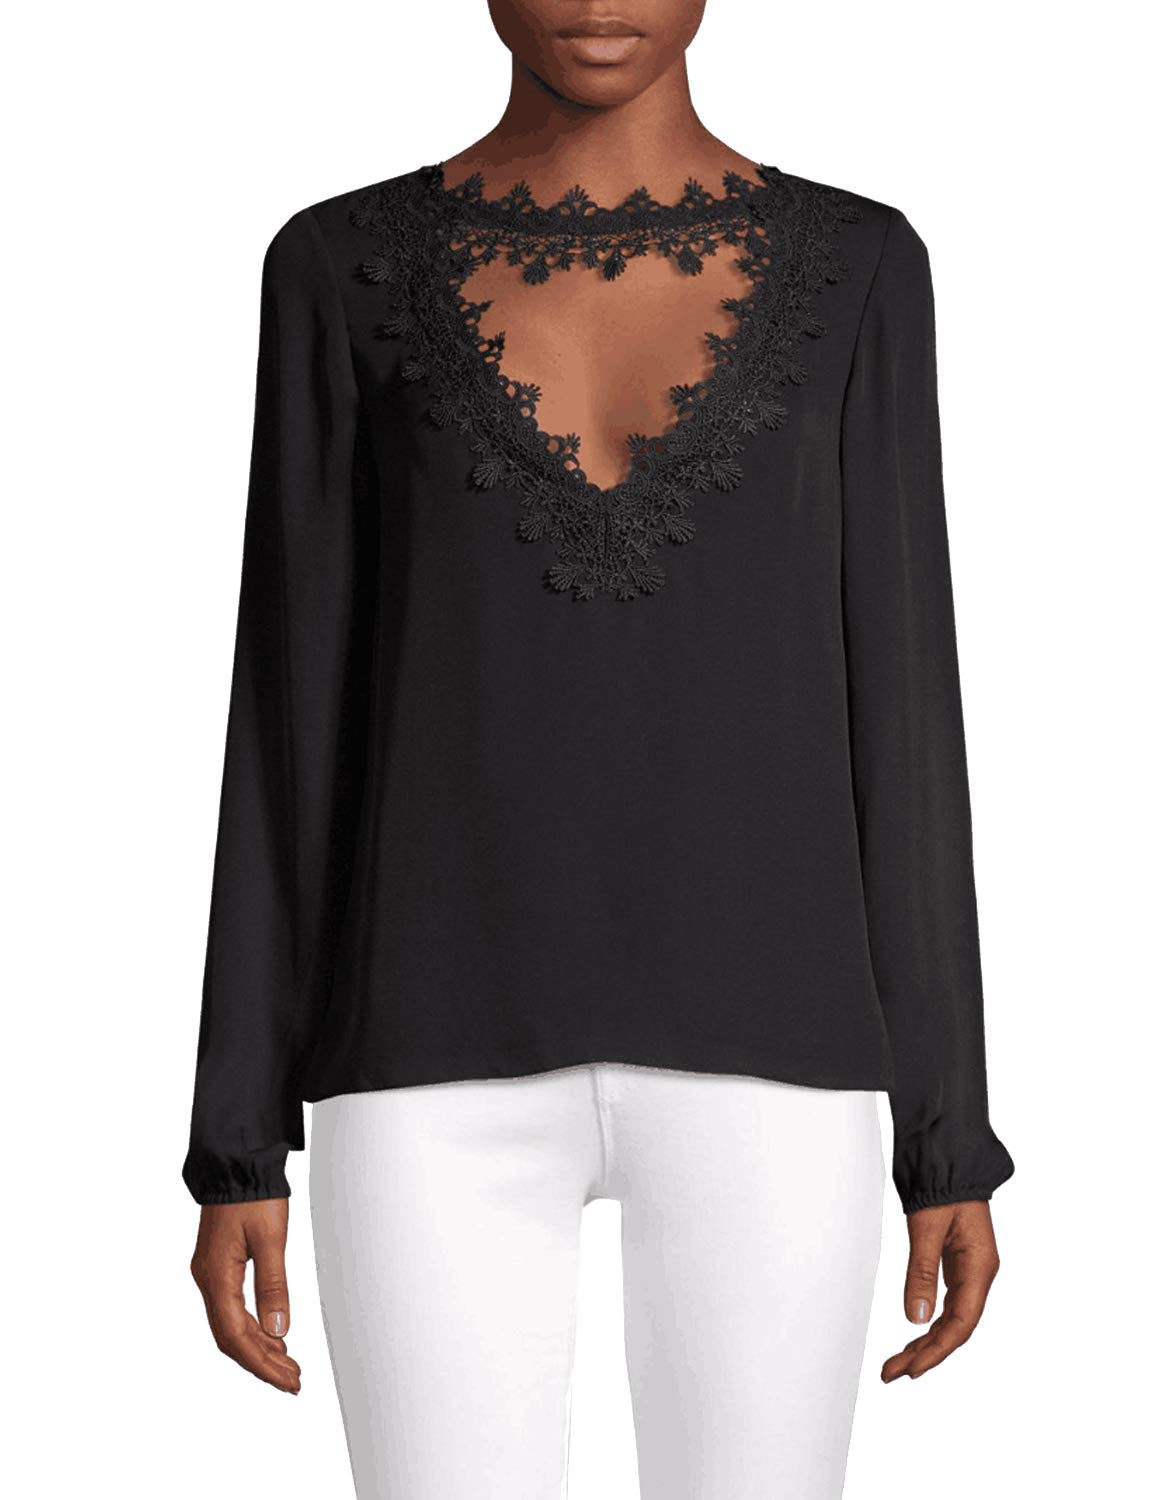 Blooming Jelly Womens Long Sleeve Lace Chiffon Keyhole Choker Blouse Shirt Black